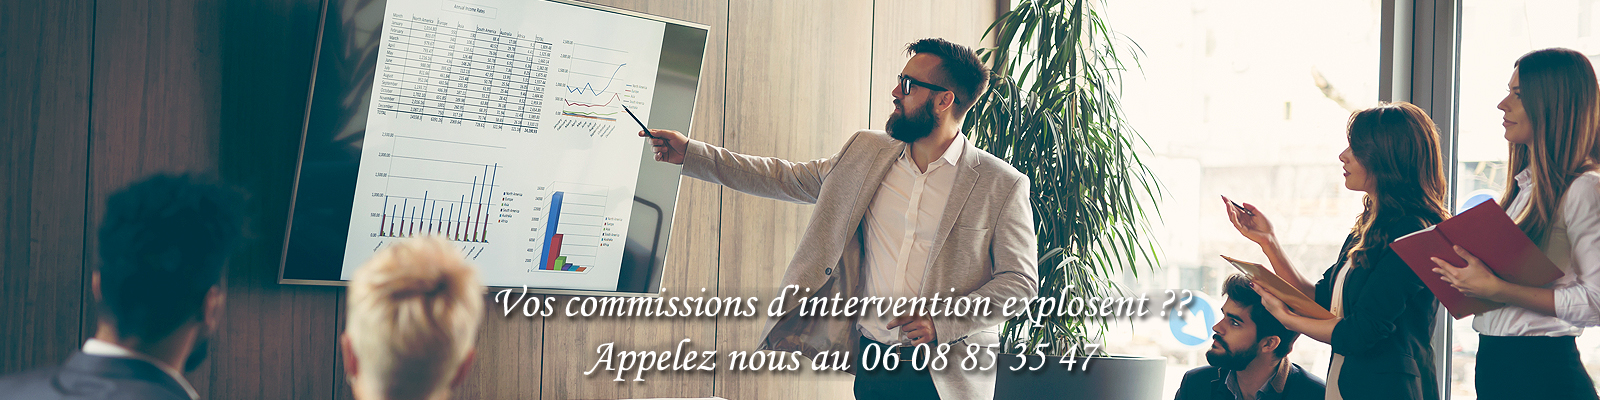 commissions d'intervention